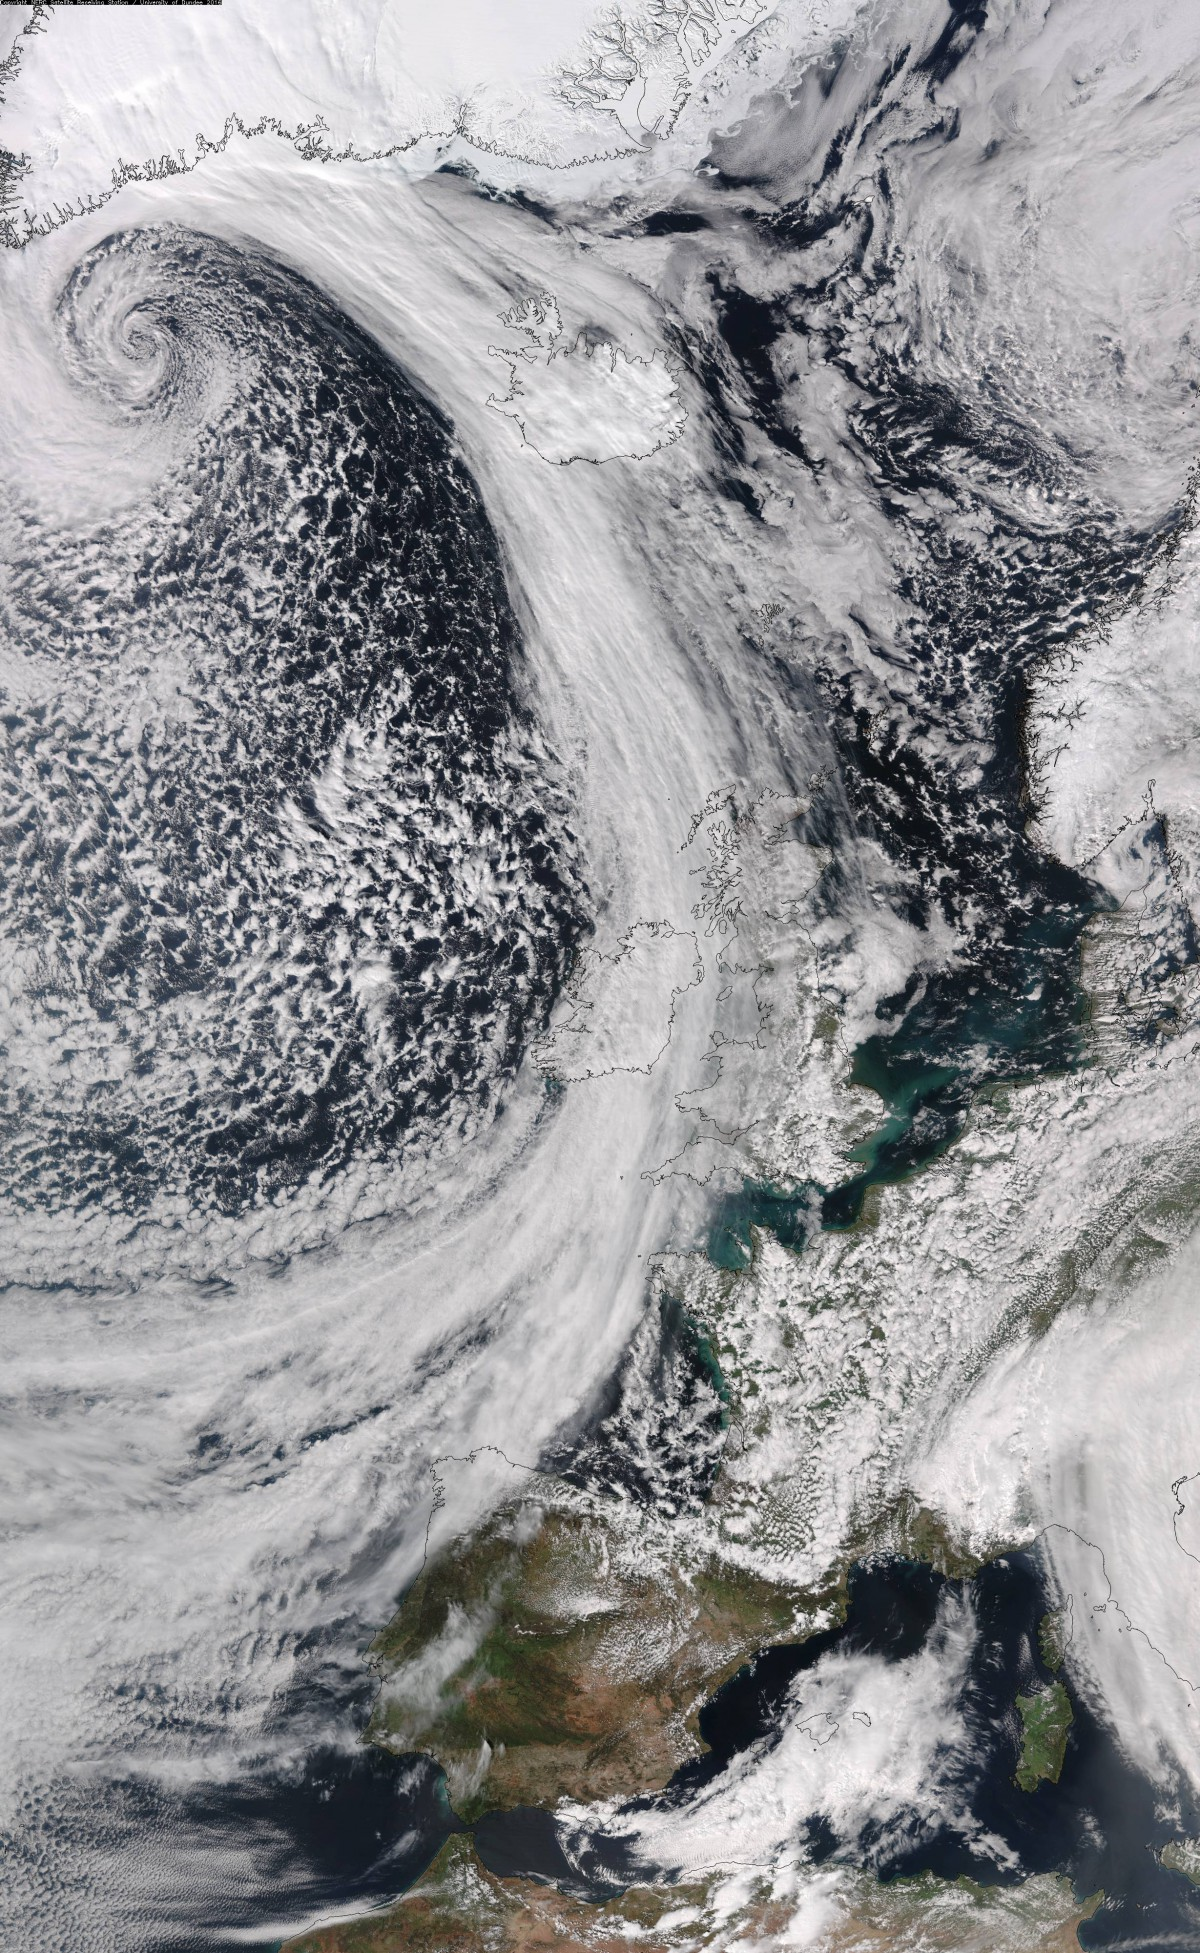 spiral low near Greenland, 8 Apr 16